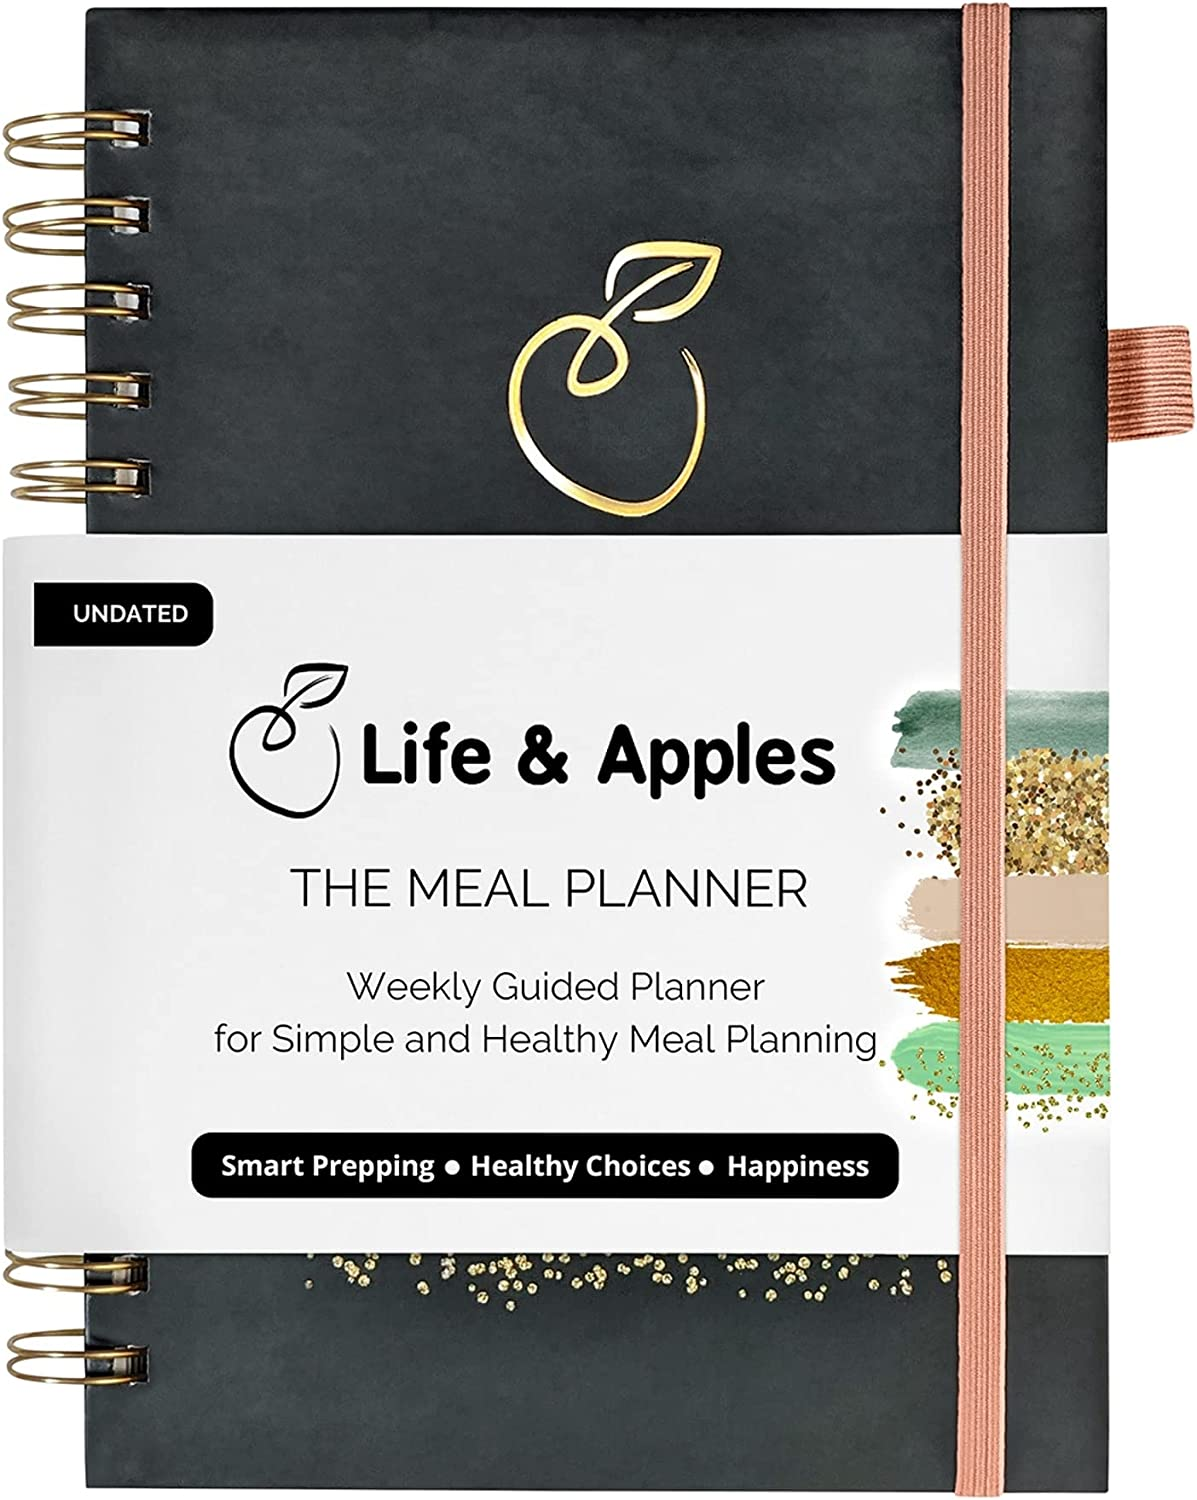 Life & Apples Meal Planner Notebook - Weekly Meal Prep Planner and Grocery List, with Recipe Card Pages and Expense Trackers - 52 Weeks, Hardcover Spiral Bound Book (Color Strokes)